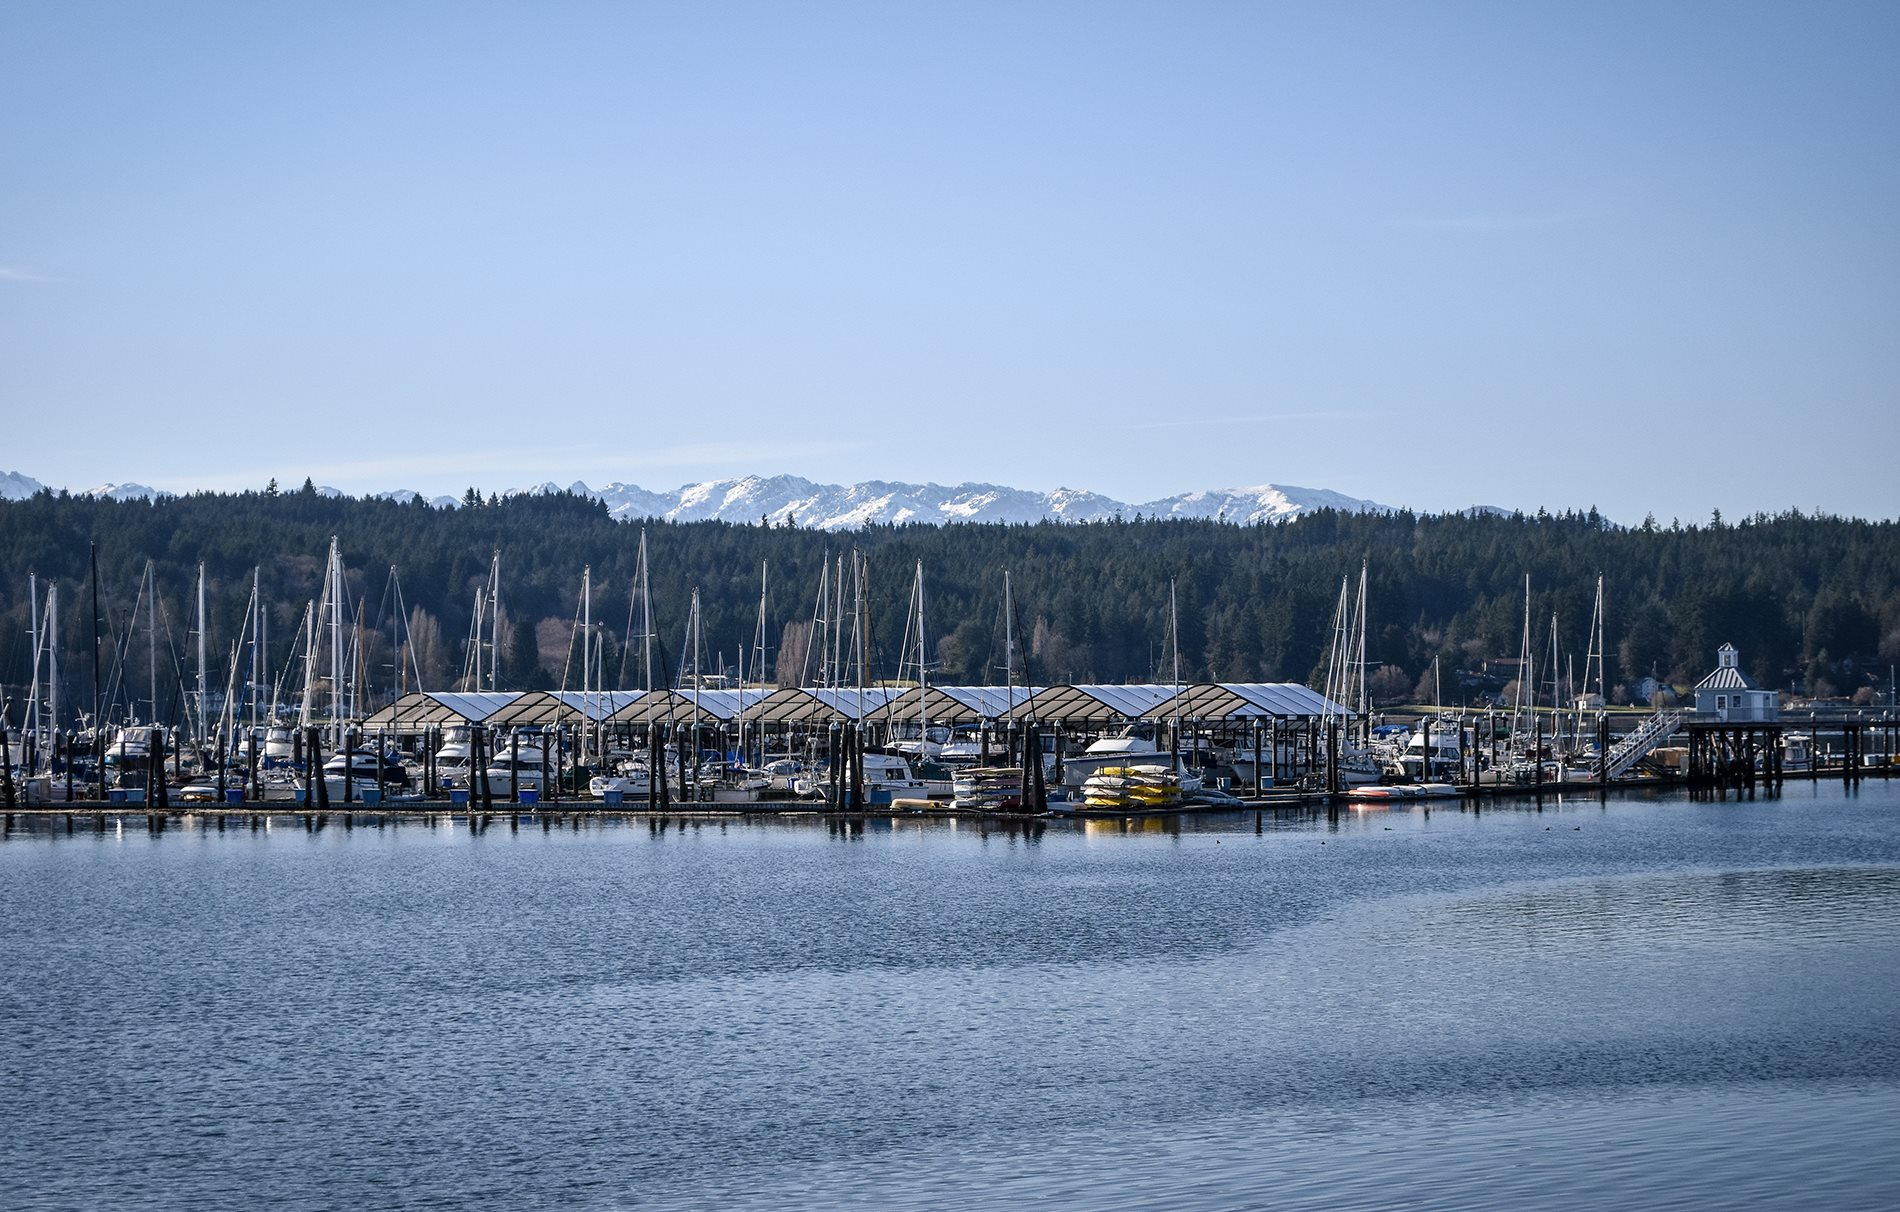 Stock image of bayside with dock and sail boats